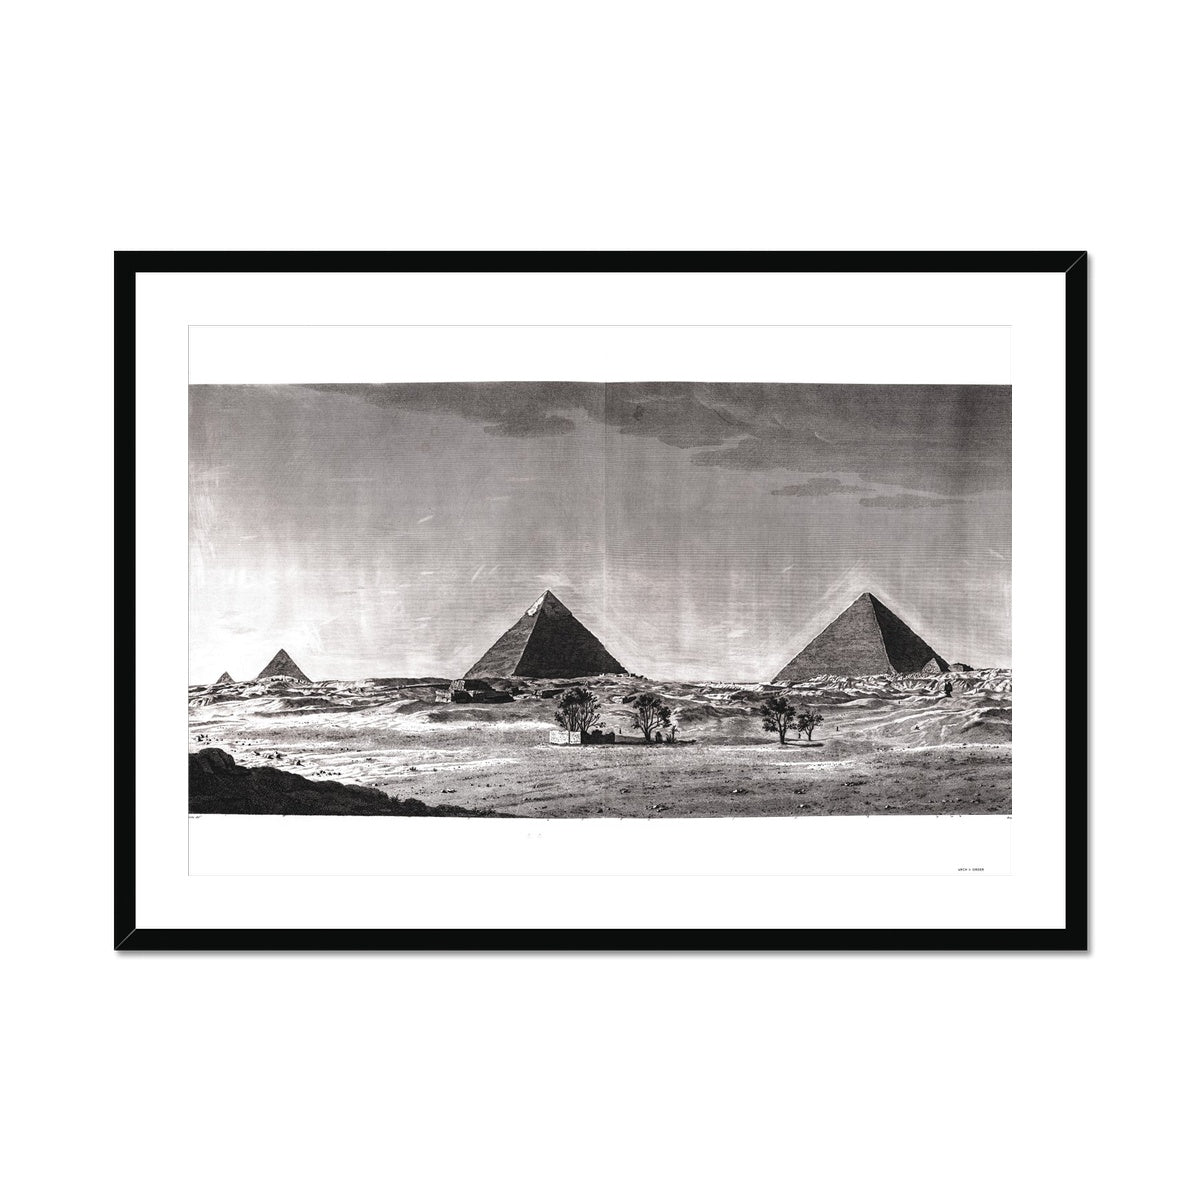 View of Pyramids from the South  - Memphis Egypt -  Framed & Mounted Print